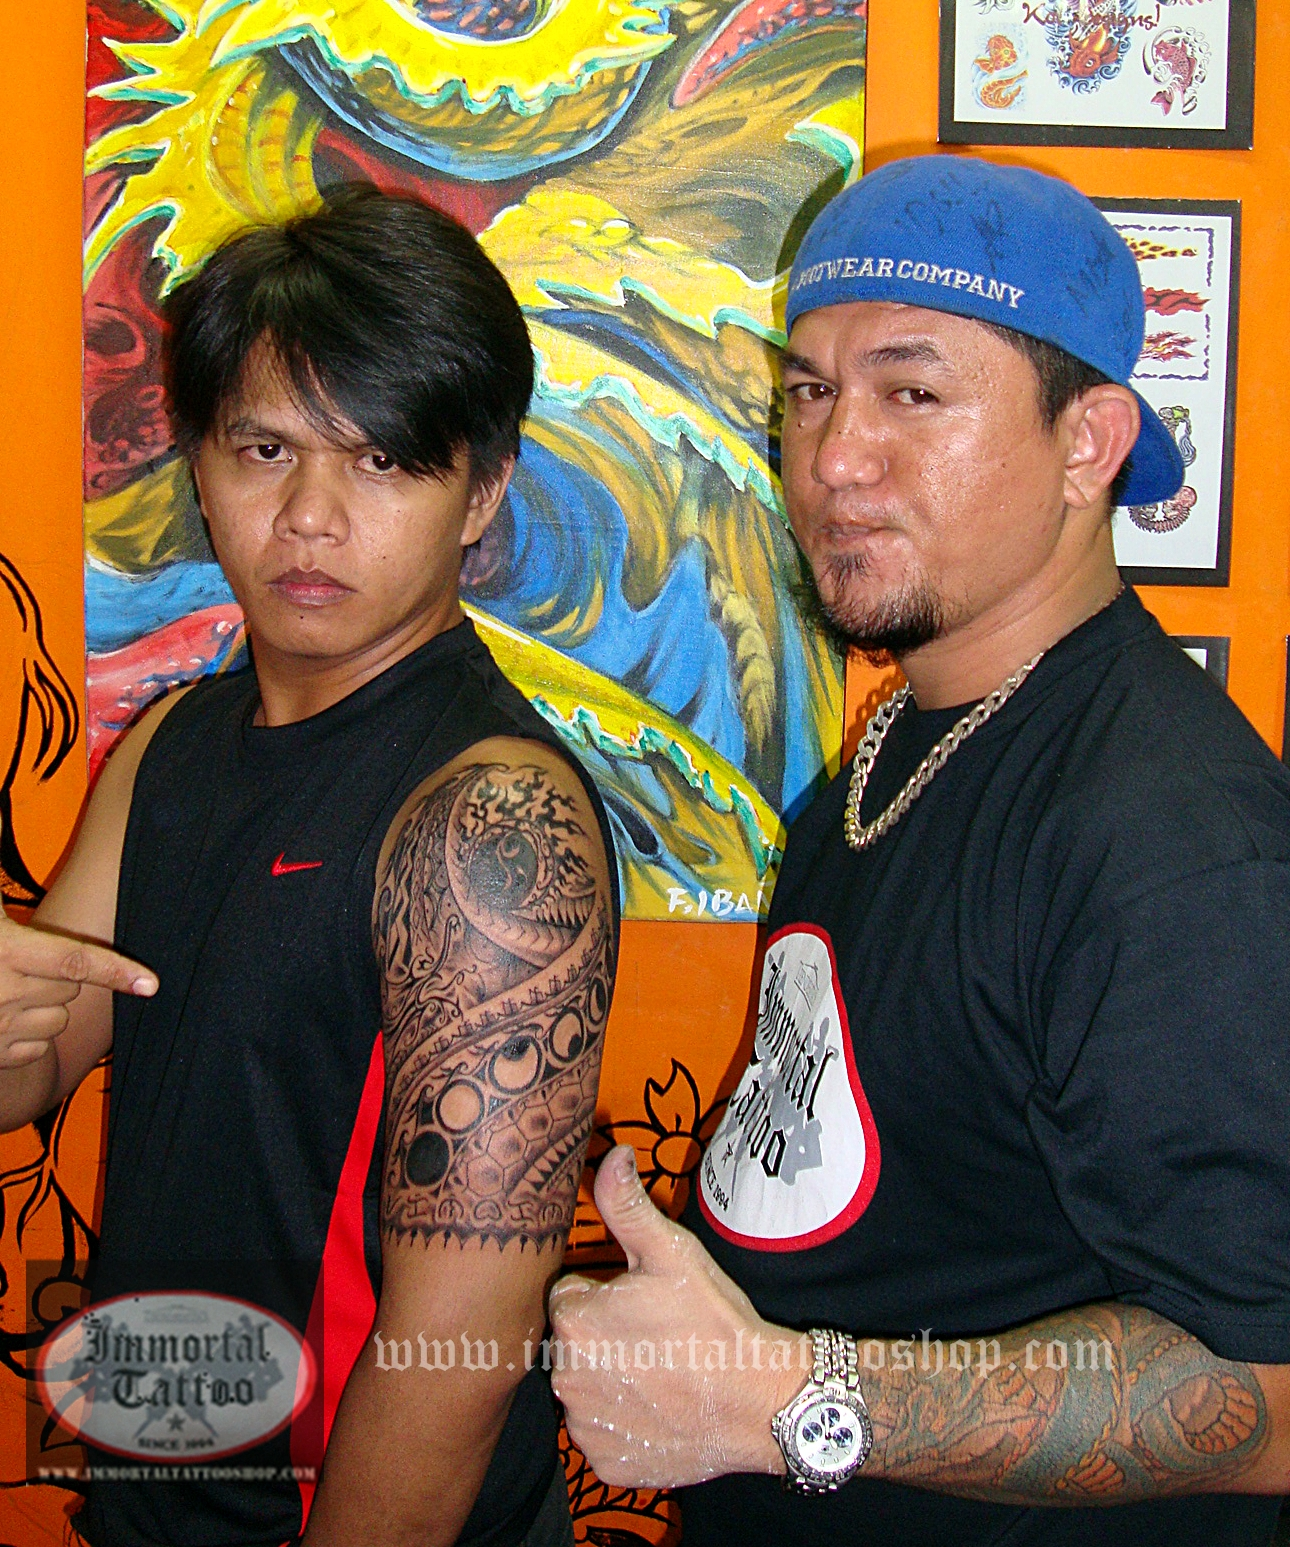 IMMORTAL TATTOO MANILA PHILIPPINES by frank ibanez jr.